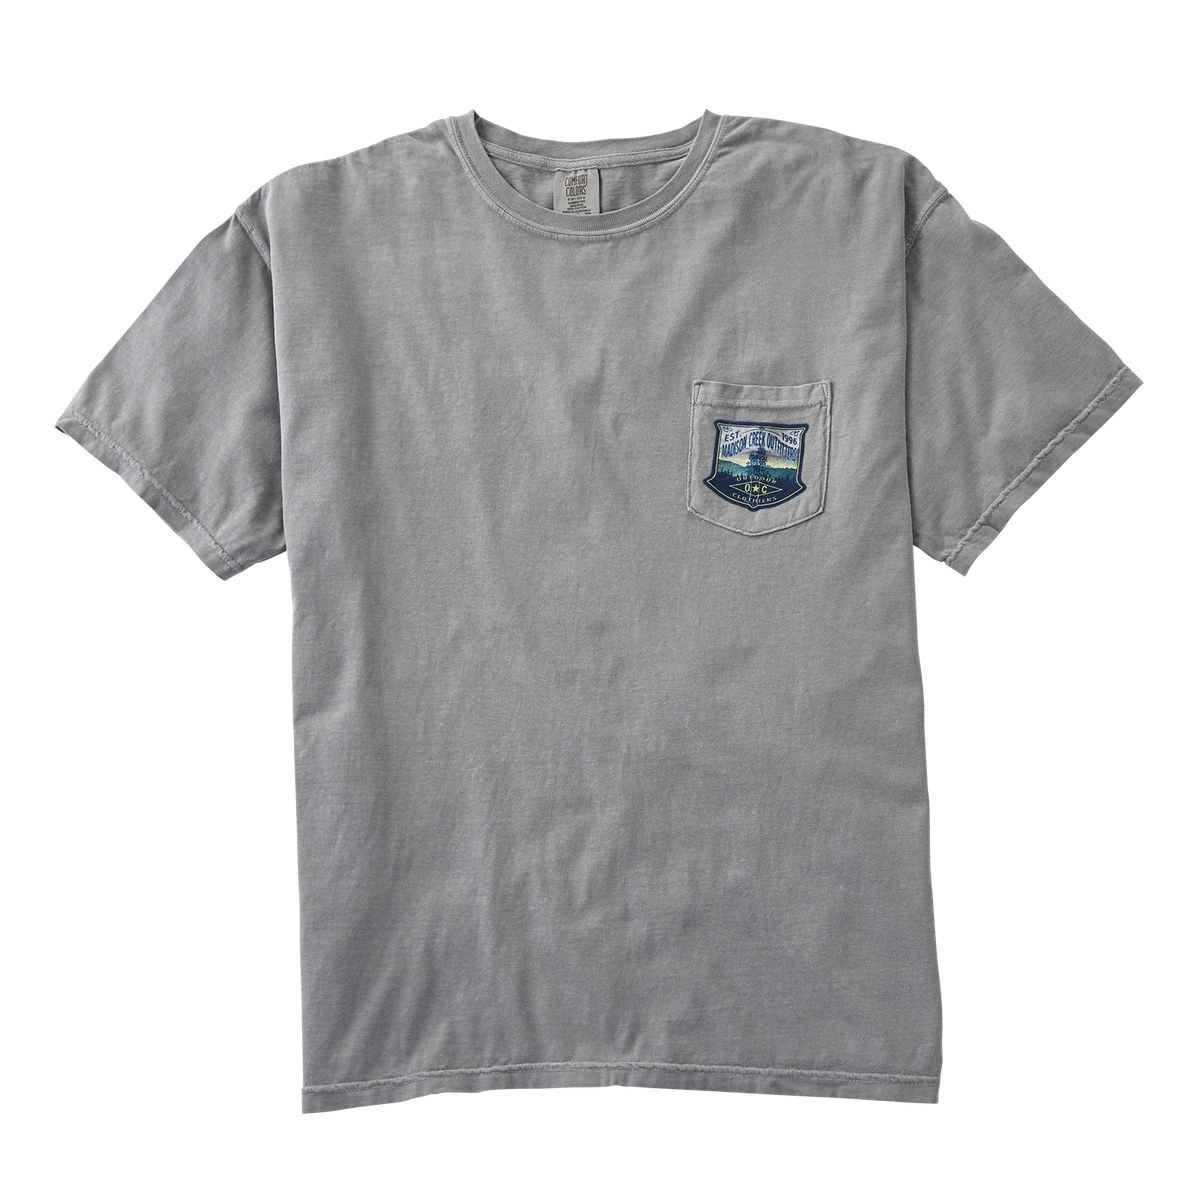 Great Outdoors Vintage Tee Shirt